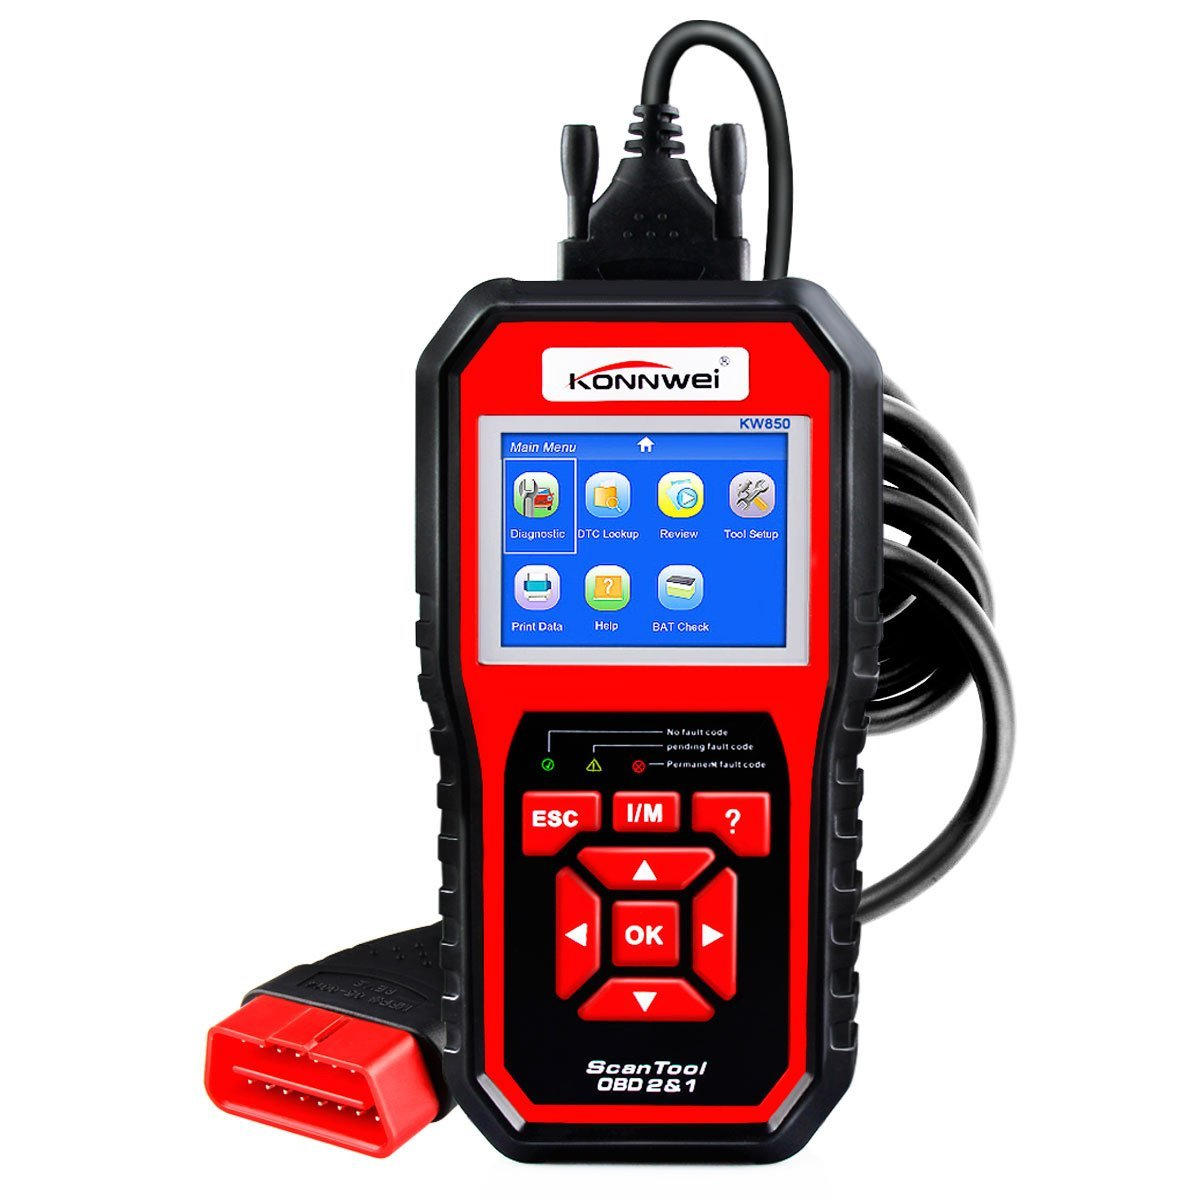 KONNWEI KW850 OBD2 Scanner Car Engine Fault Code Reader Automotive Car Diagnostic Scanner